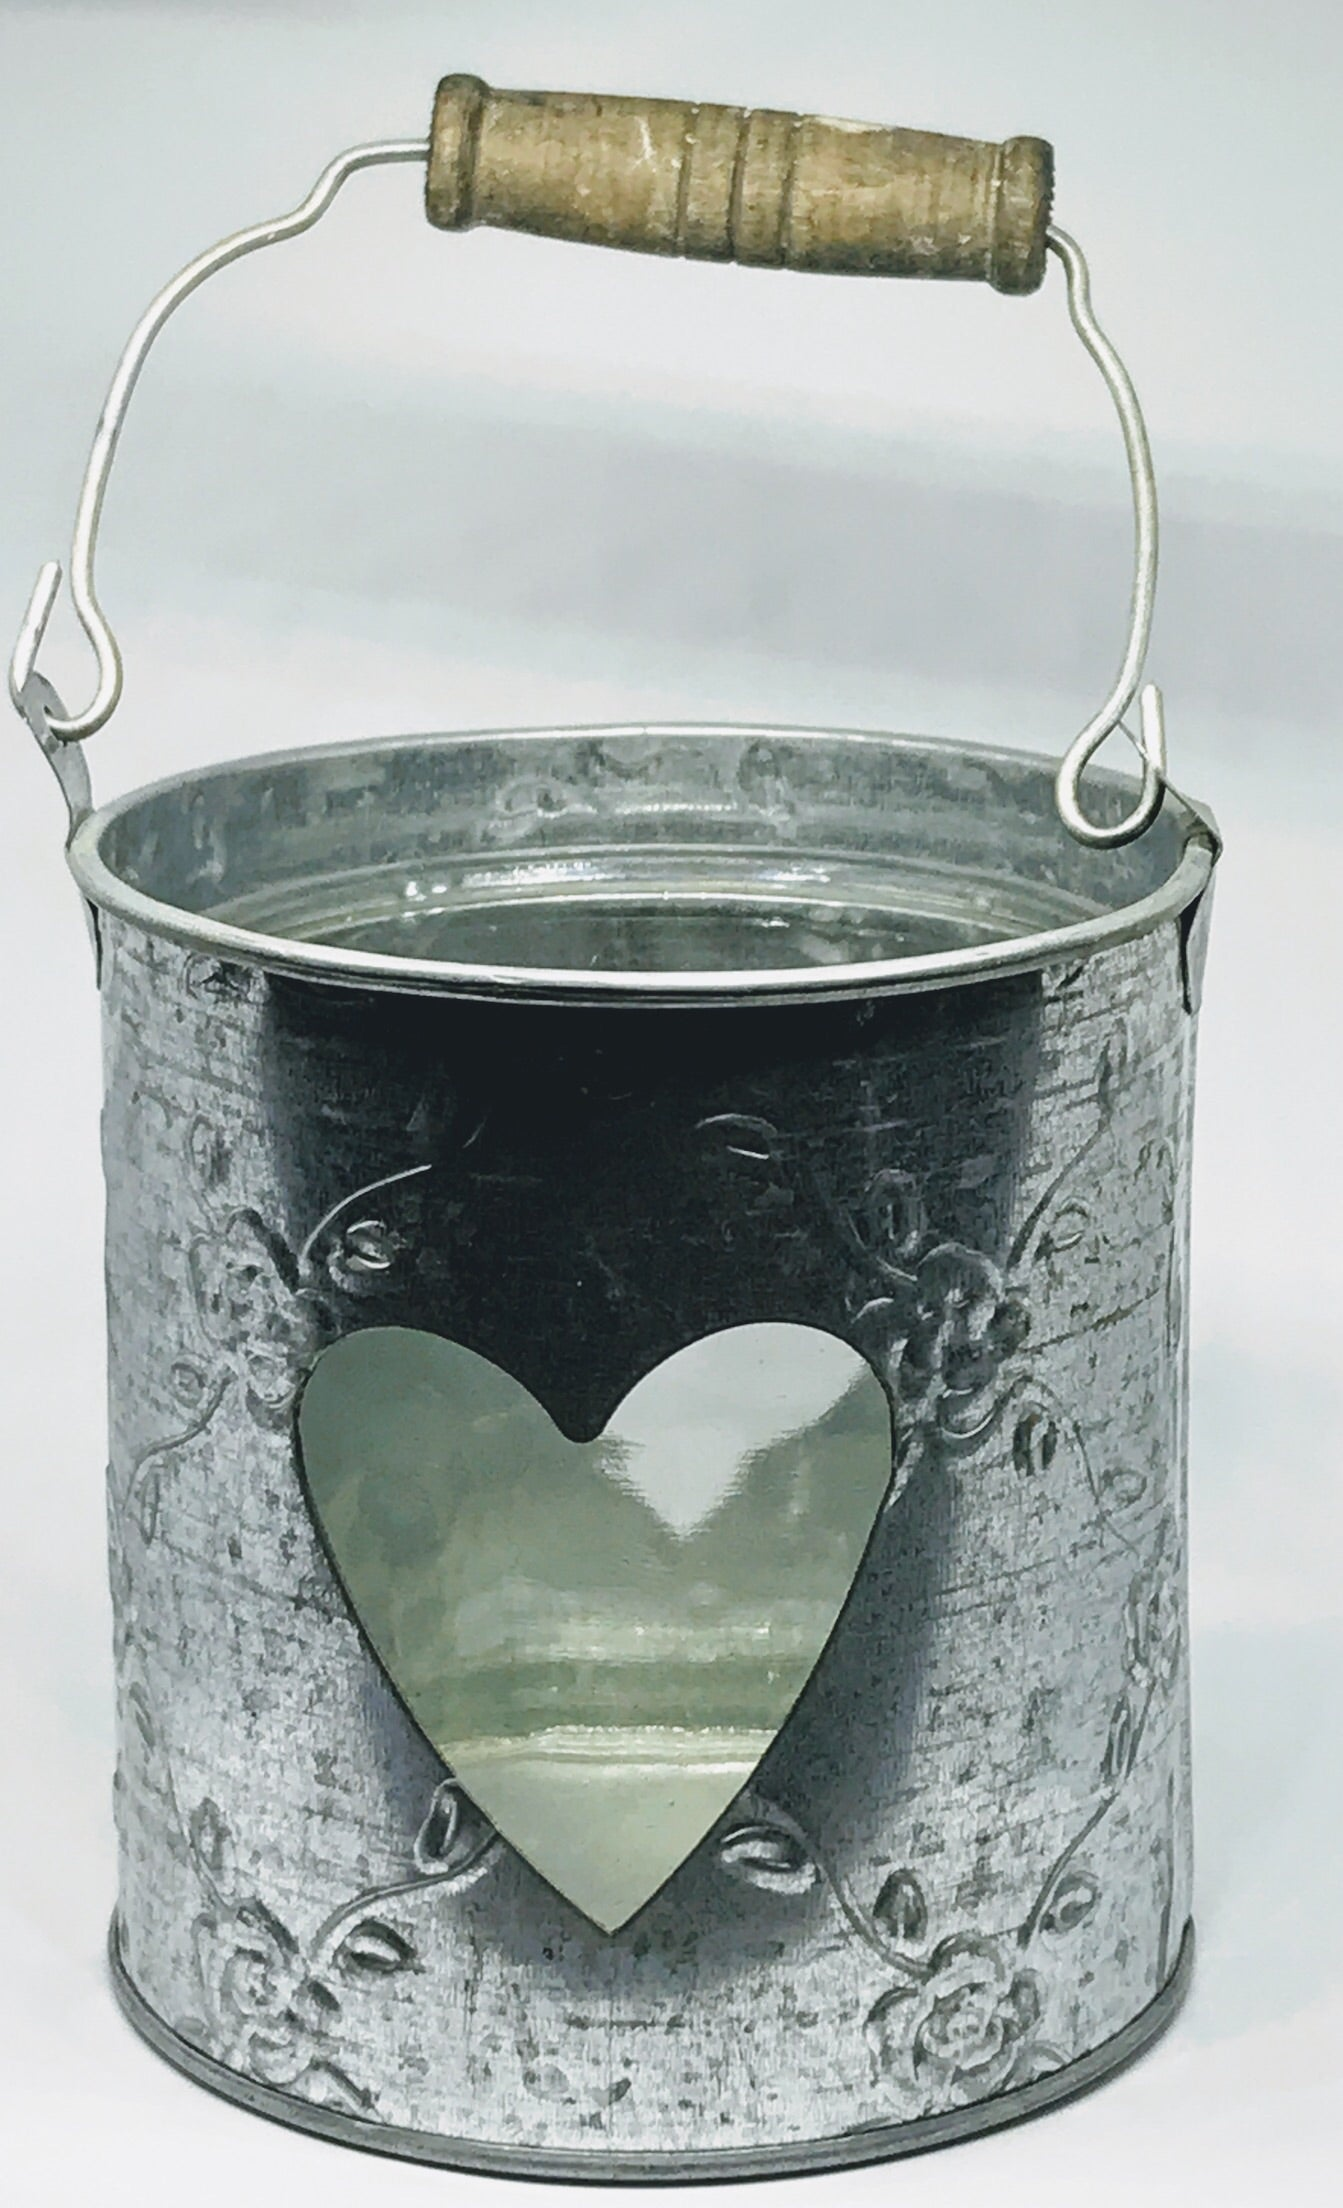 Heart metal candle holder